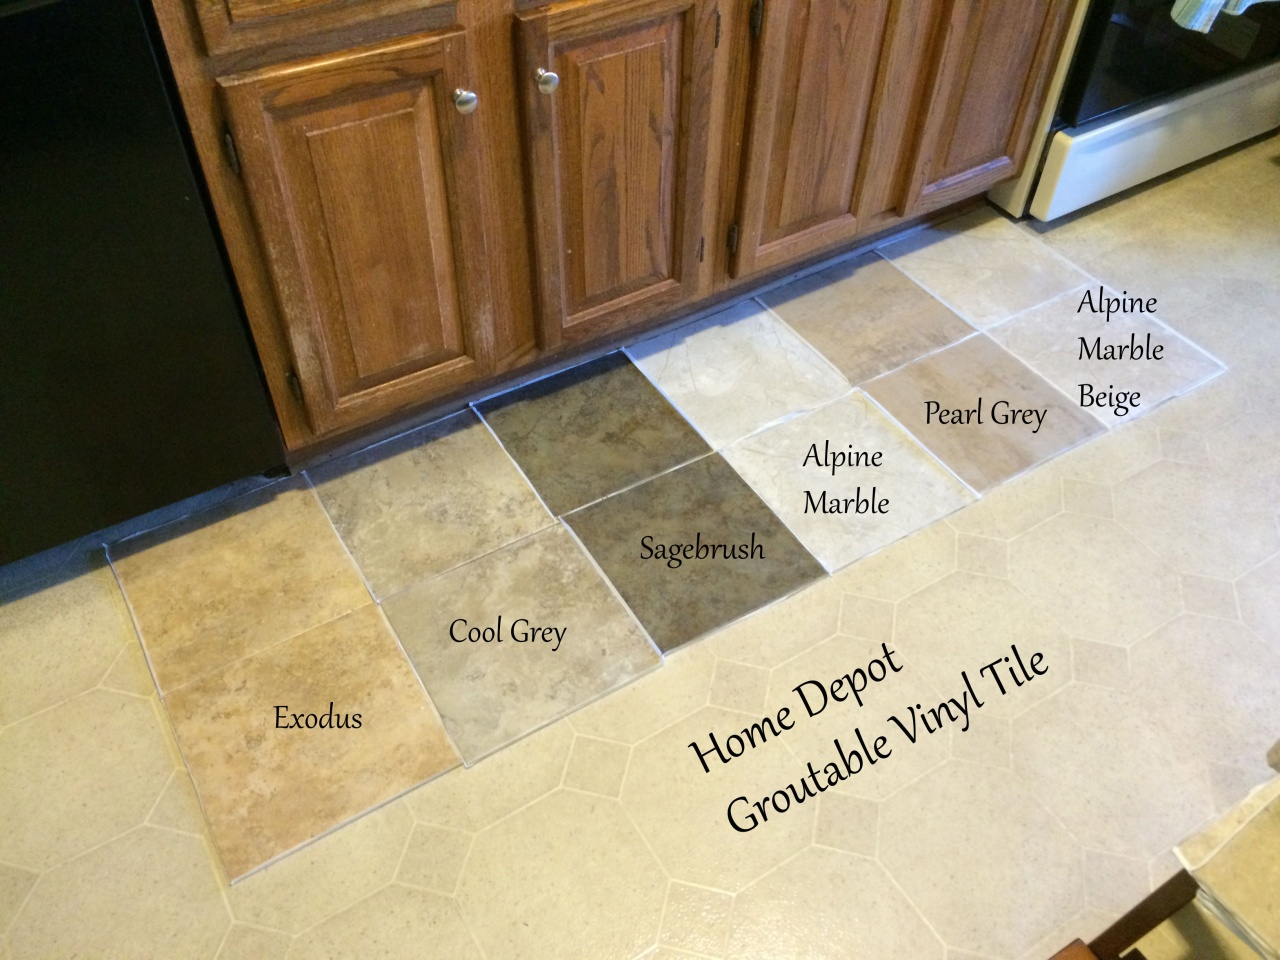 Painting Vinyl Tile Floors Before And After Looking For Kitchen Flooring Ideas Found Groutable Vinyl Equalmarriagefl Vinyl From Painting Vinyl Tile Floors Before And After Pictures